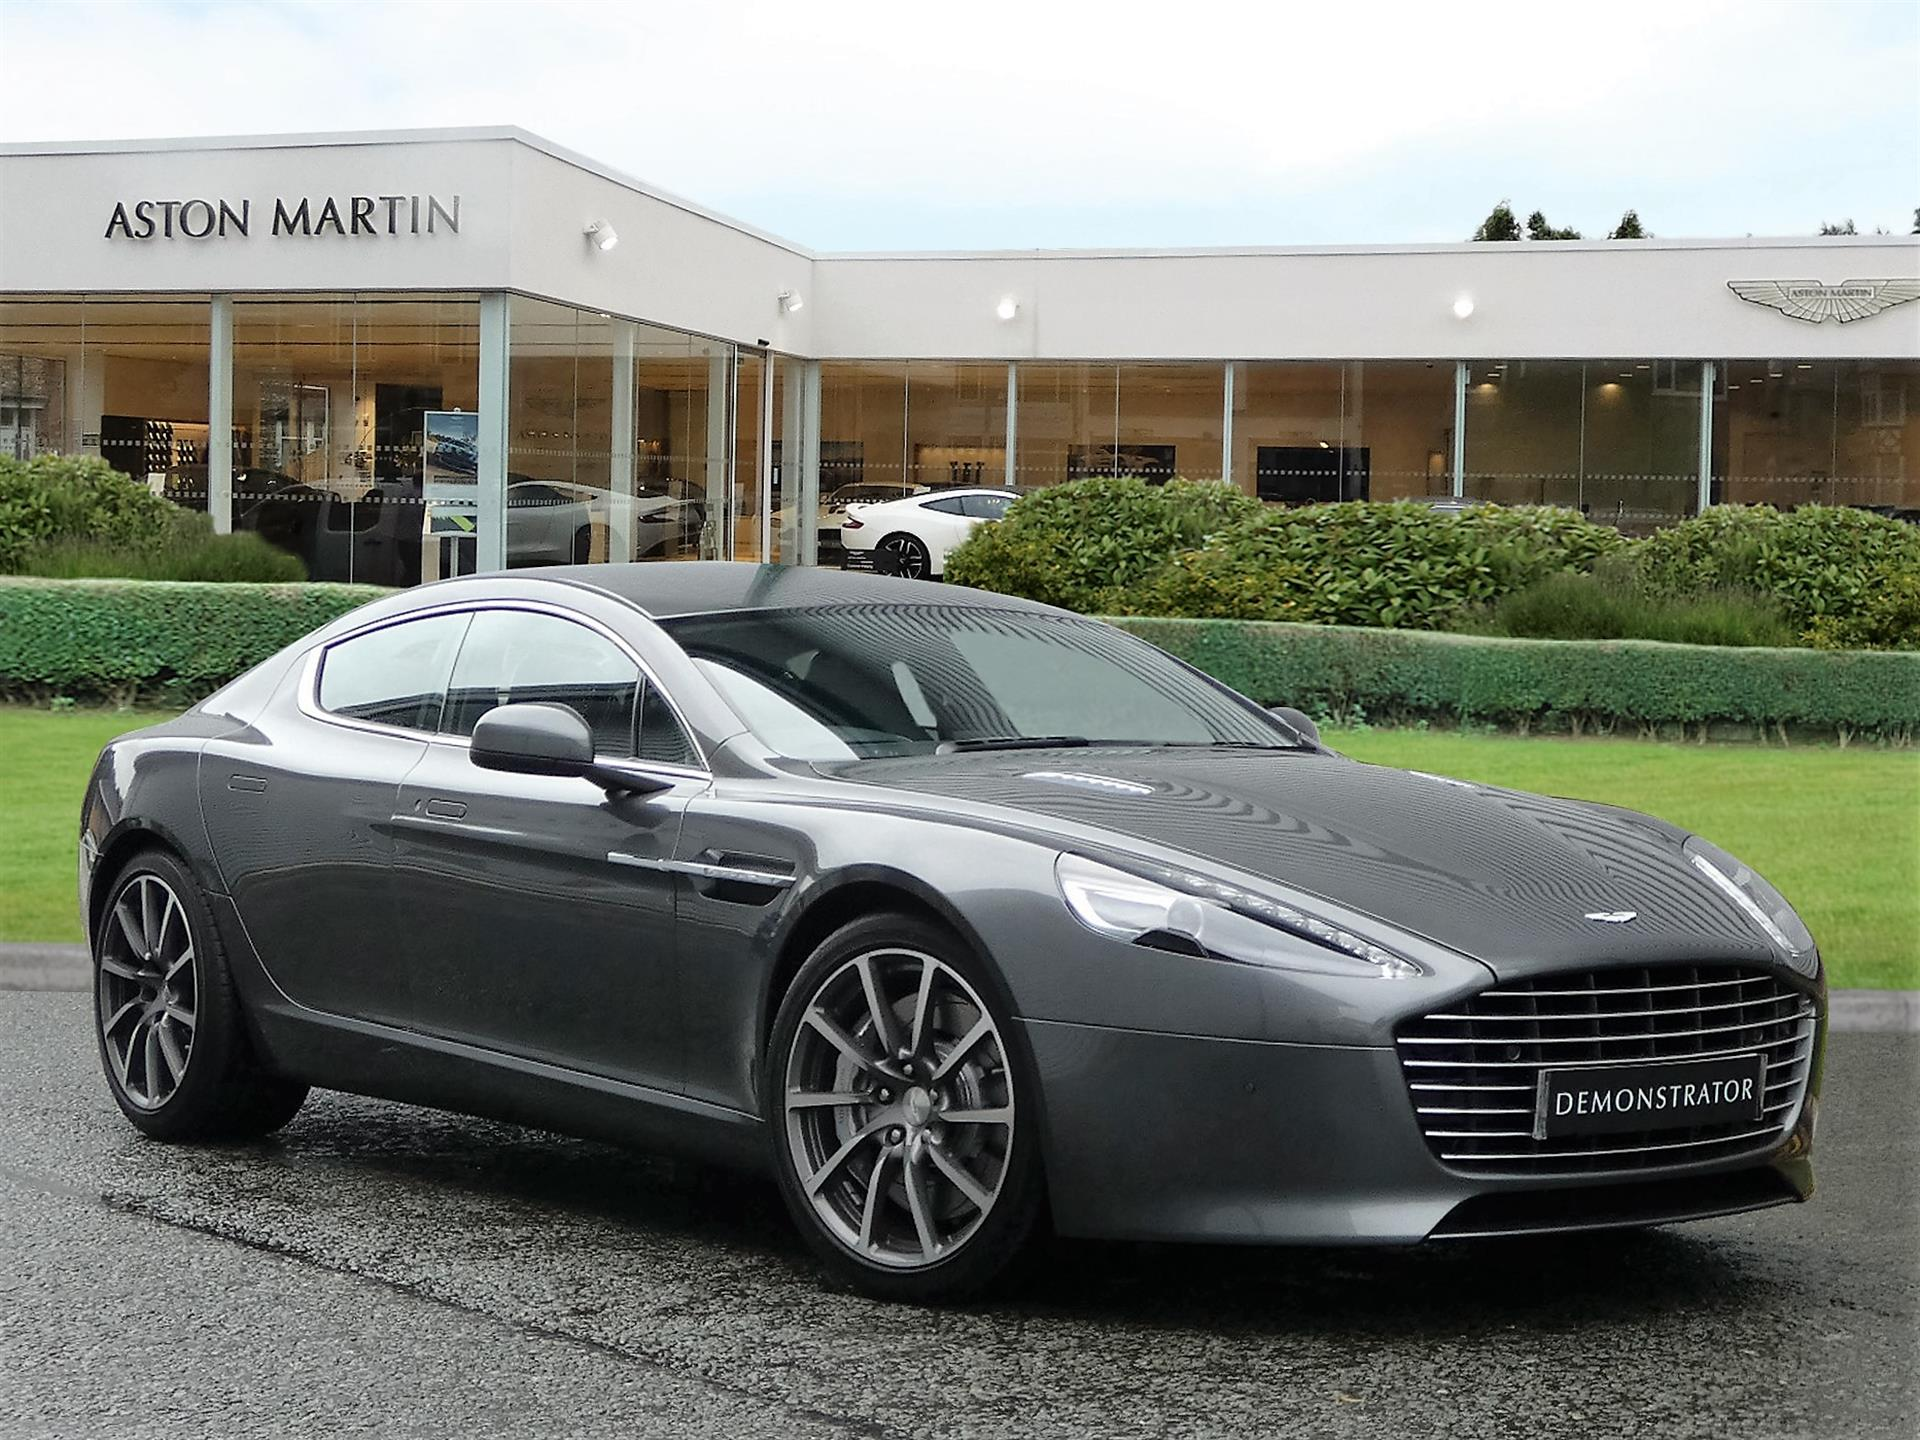 aston martin lagonda pre owned used aston martins car details rapide s coupe mj17uob. Black Bedroom Furniture Sets. Home Design Ideas